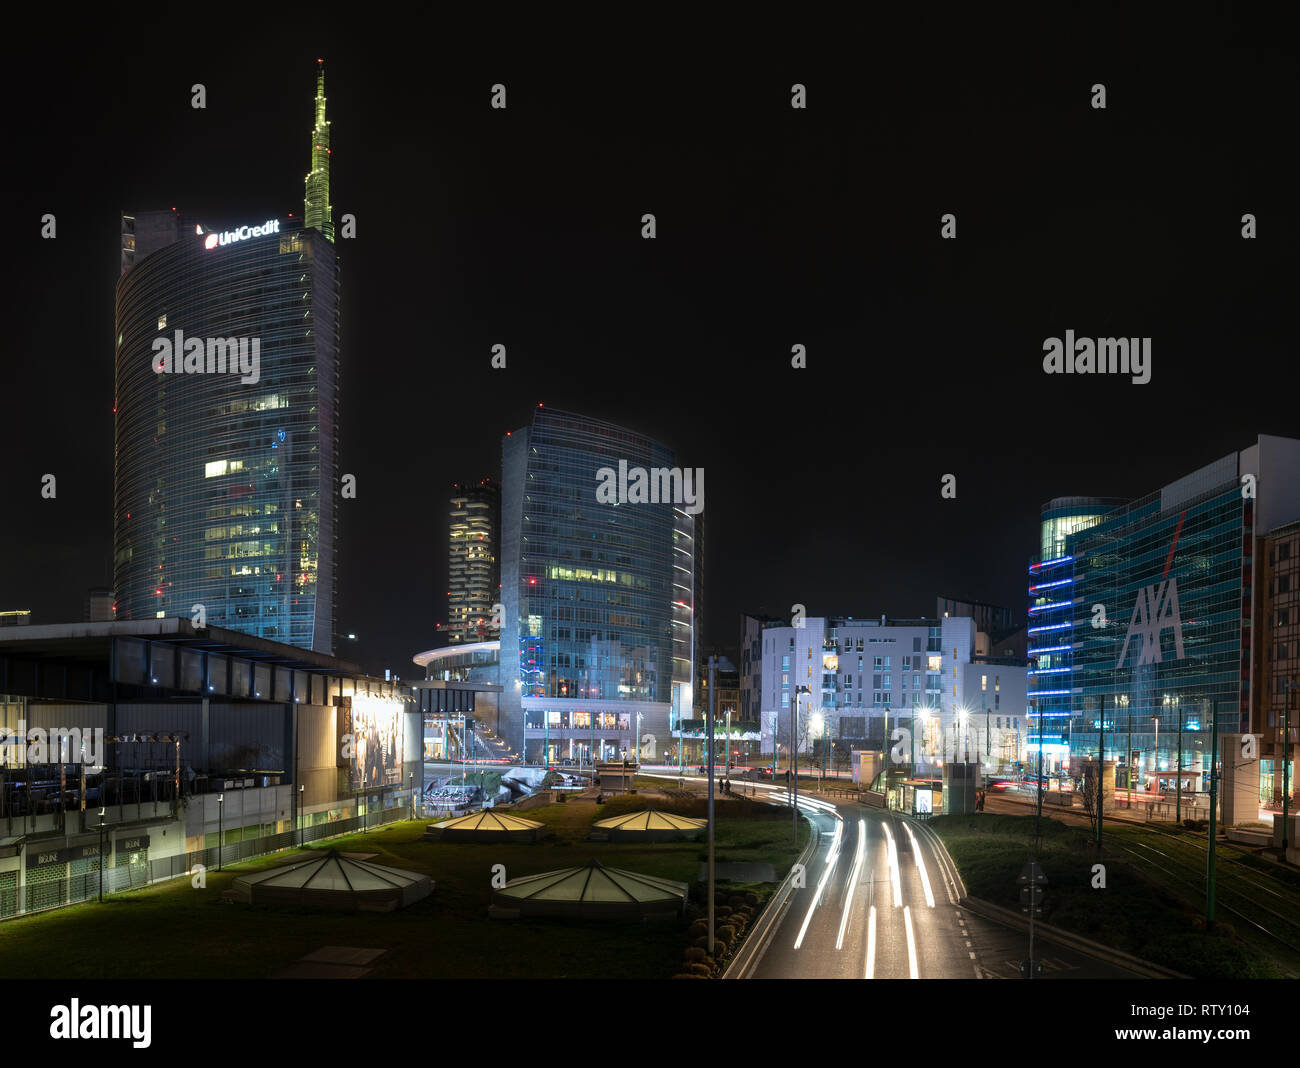 03/02/2019 Mialn, Italy: Unicredit tower, Gae Aulenti square, financial district of milan seen from the overpass Bussa. Nocturnal scene with light tra Stock Photo